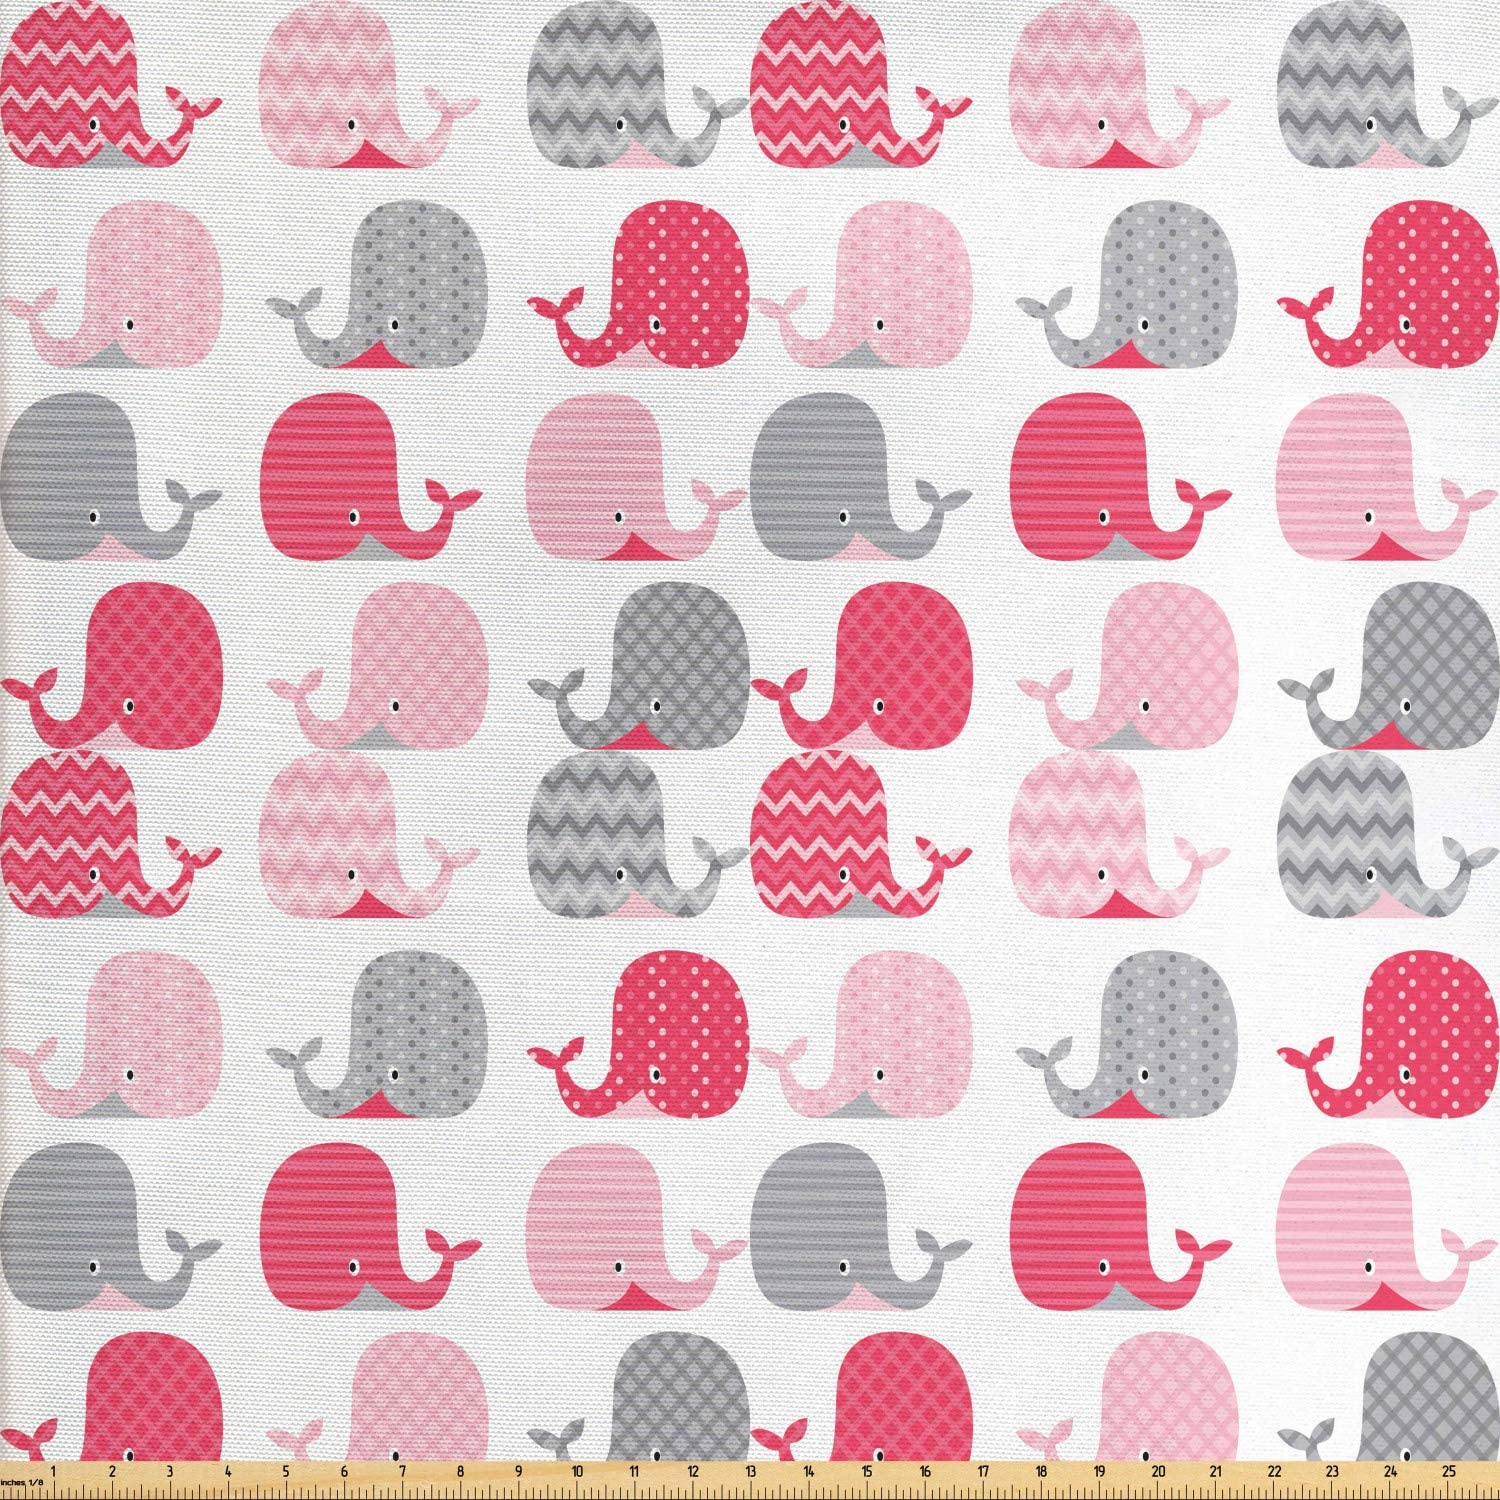 Lunarable Whale Fabric by The Yard, Patterned Mammals Design Oceanic Animals Aqua Wildlife Theme, Decorative Fabric for Upholstery and Home Accents, 1 Yard, Pink Grey